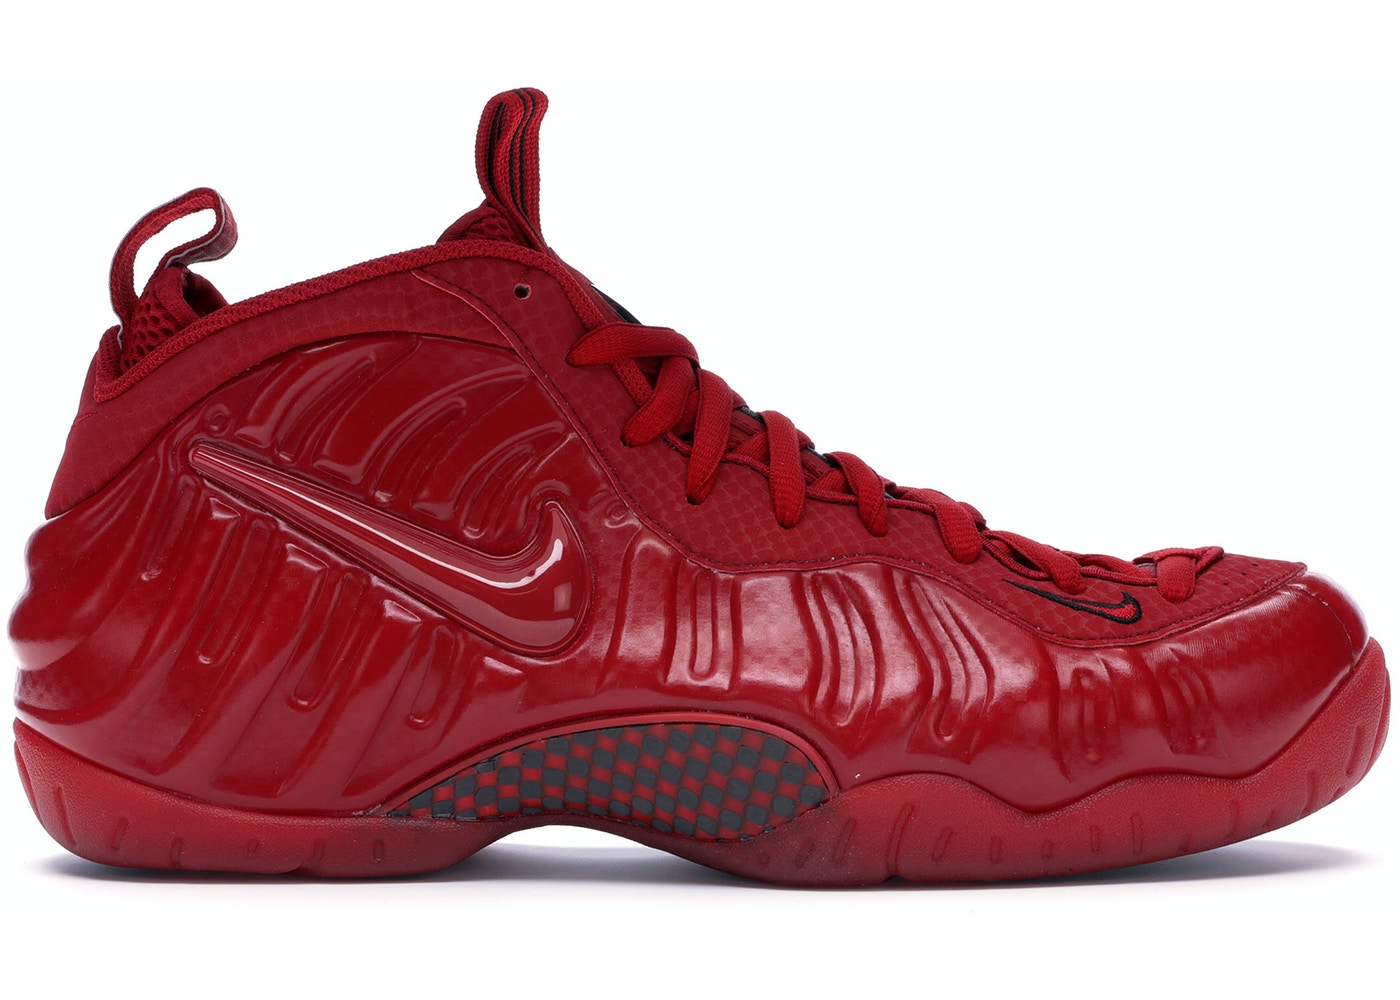 new styles 4f16c 2948c Air Foamposite Pro Red October - 624041-603